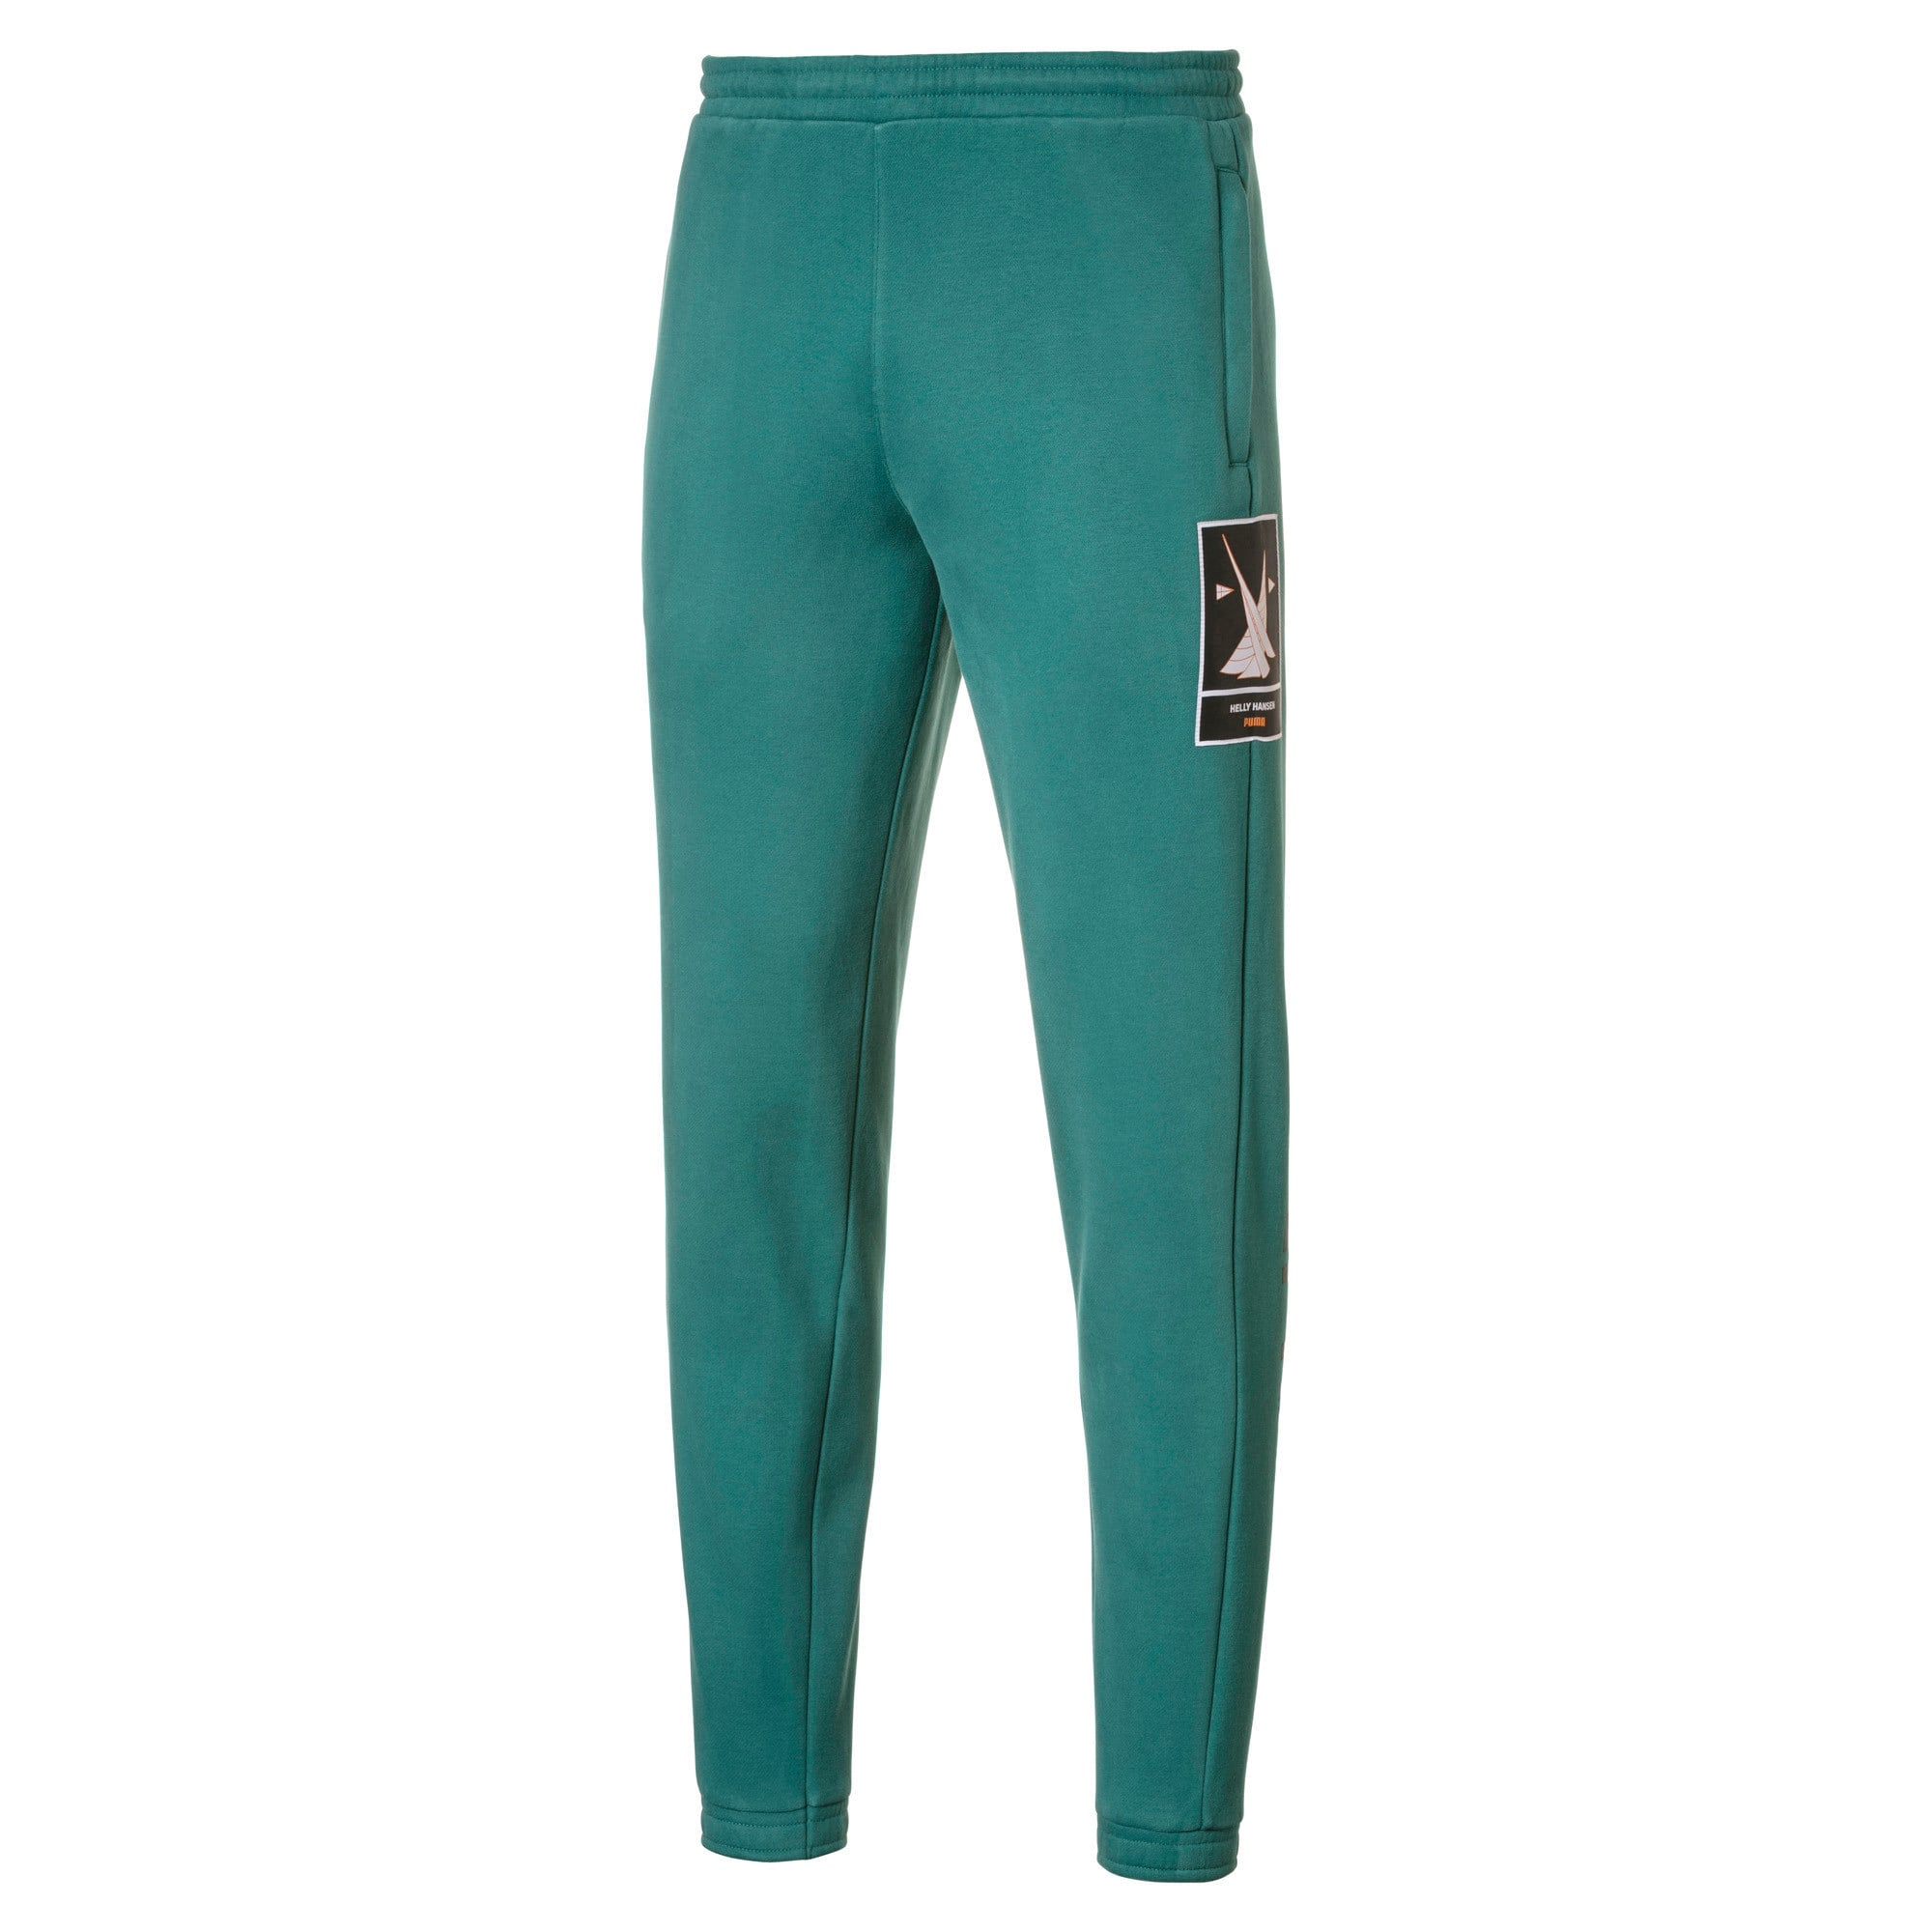 Thumbnail 1 of PUMA x HELLY HANSEN Fleece Trainingshose, Teal Green, medium